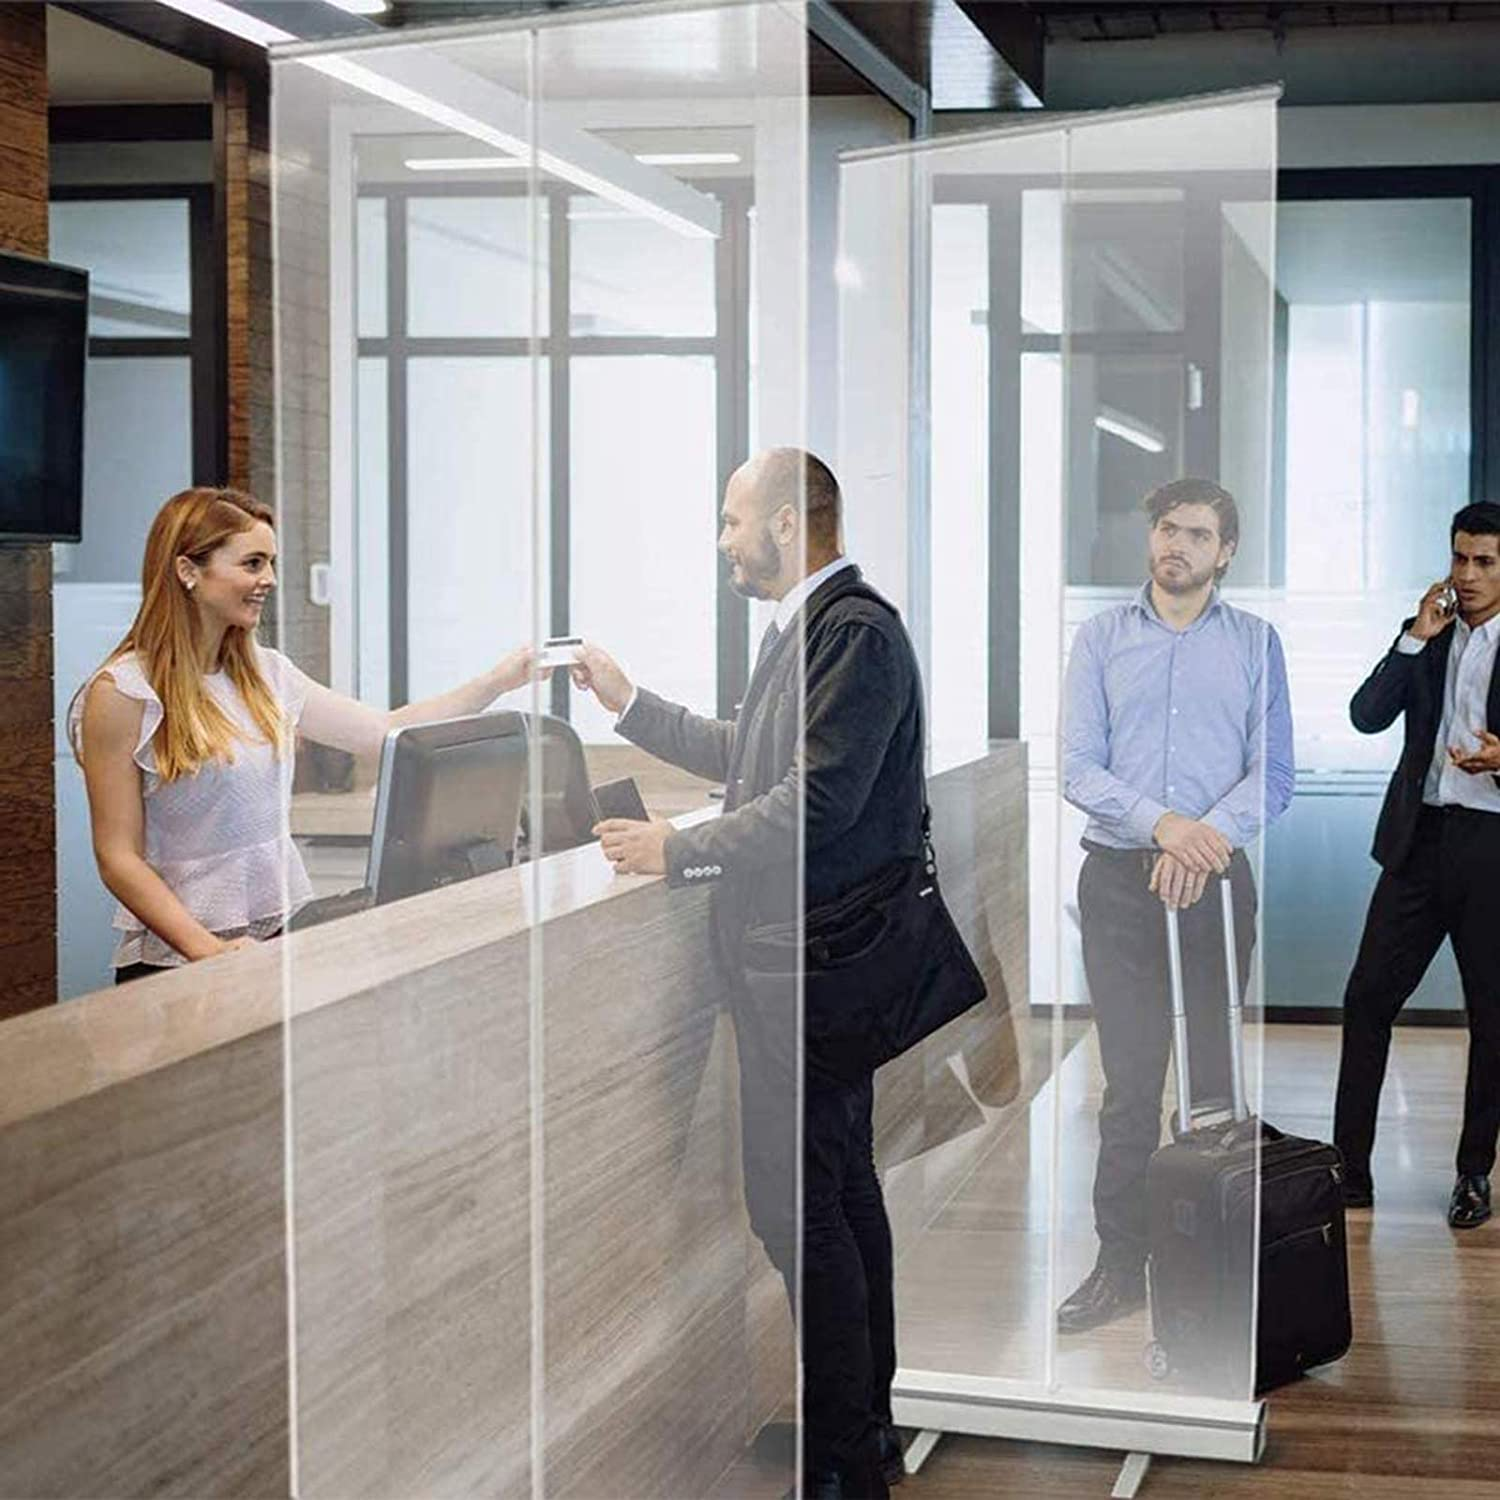 HXFAFA Floor Standing Sneeze Guard/Room Divider, Portable Divider Partition,Waterproof Plastic Protective Sneeze Guard, Clear Freestanding Shield, for Counters, Desk, Reception, Office